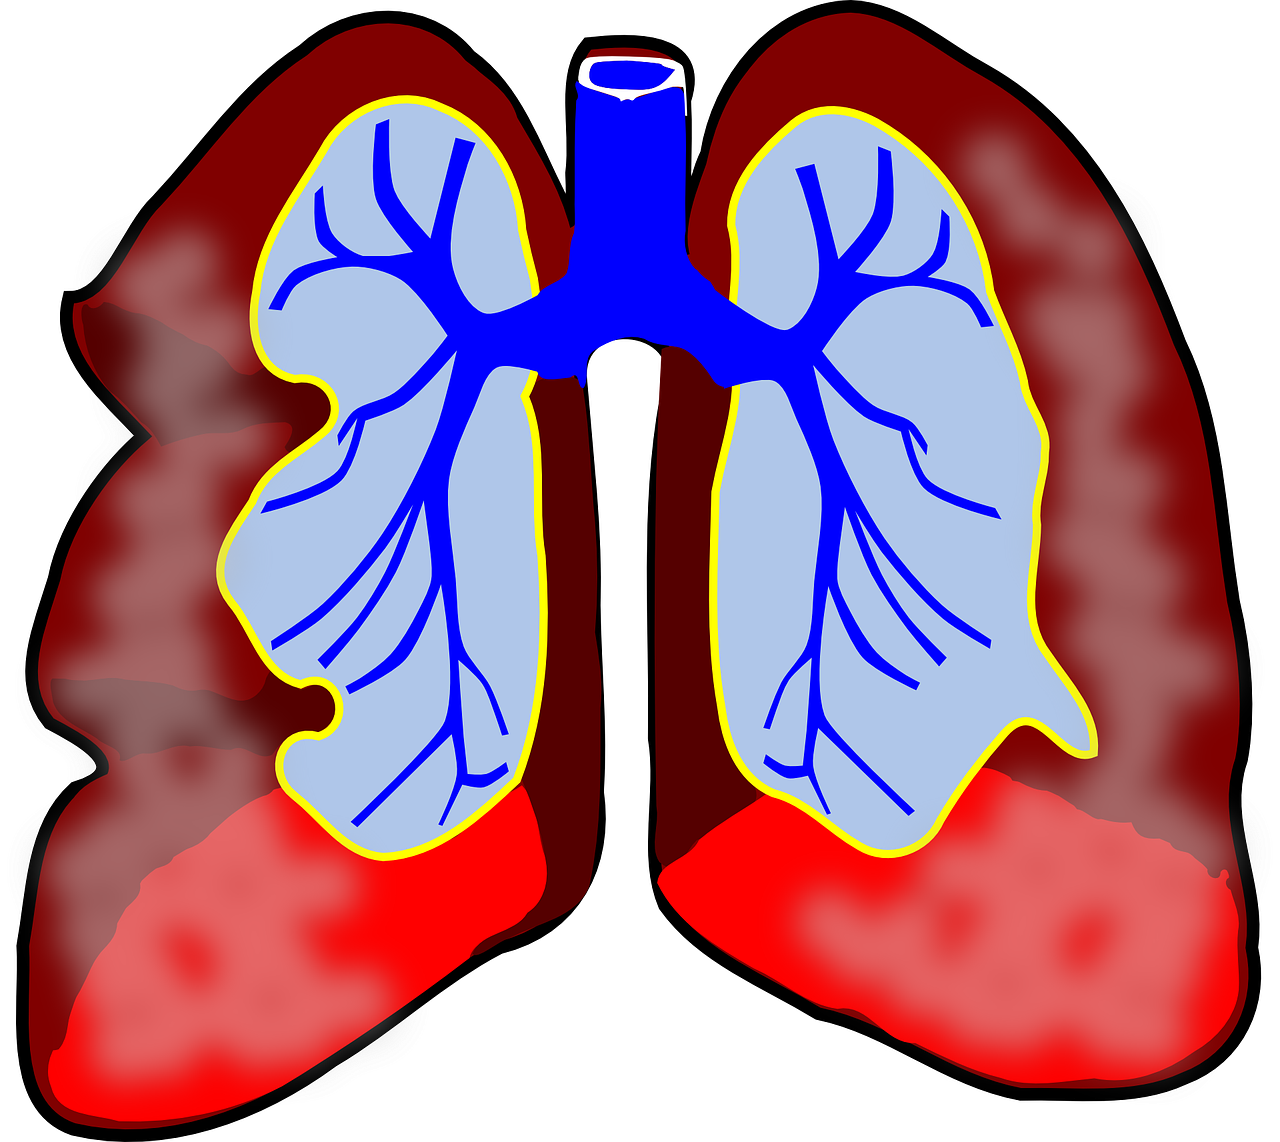 What Is Broncho Pulmonary Dysplasia?